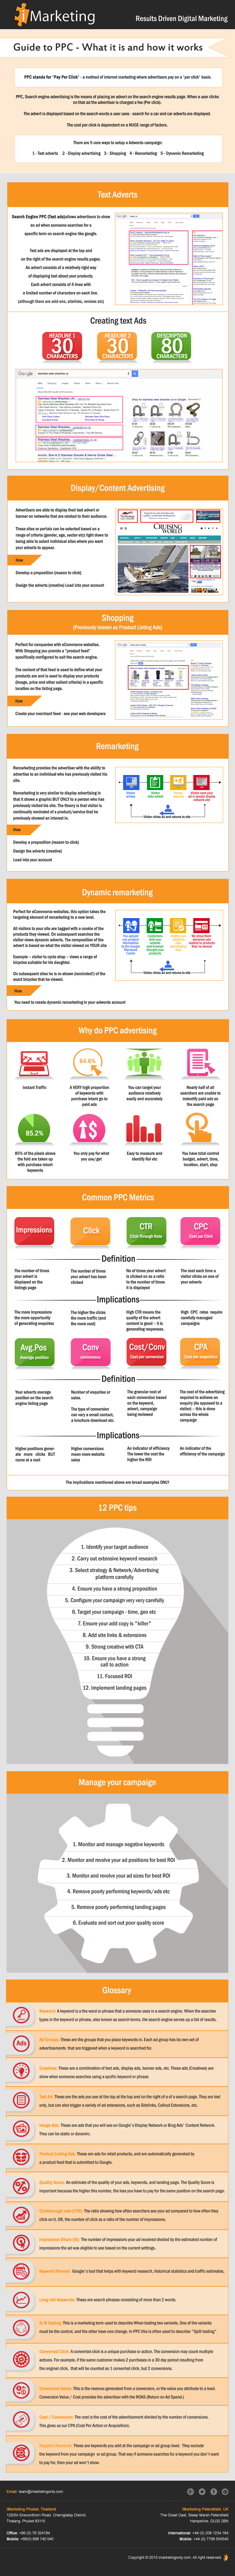 how-does-ppc-work